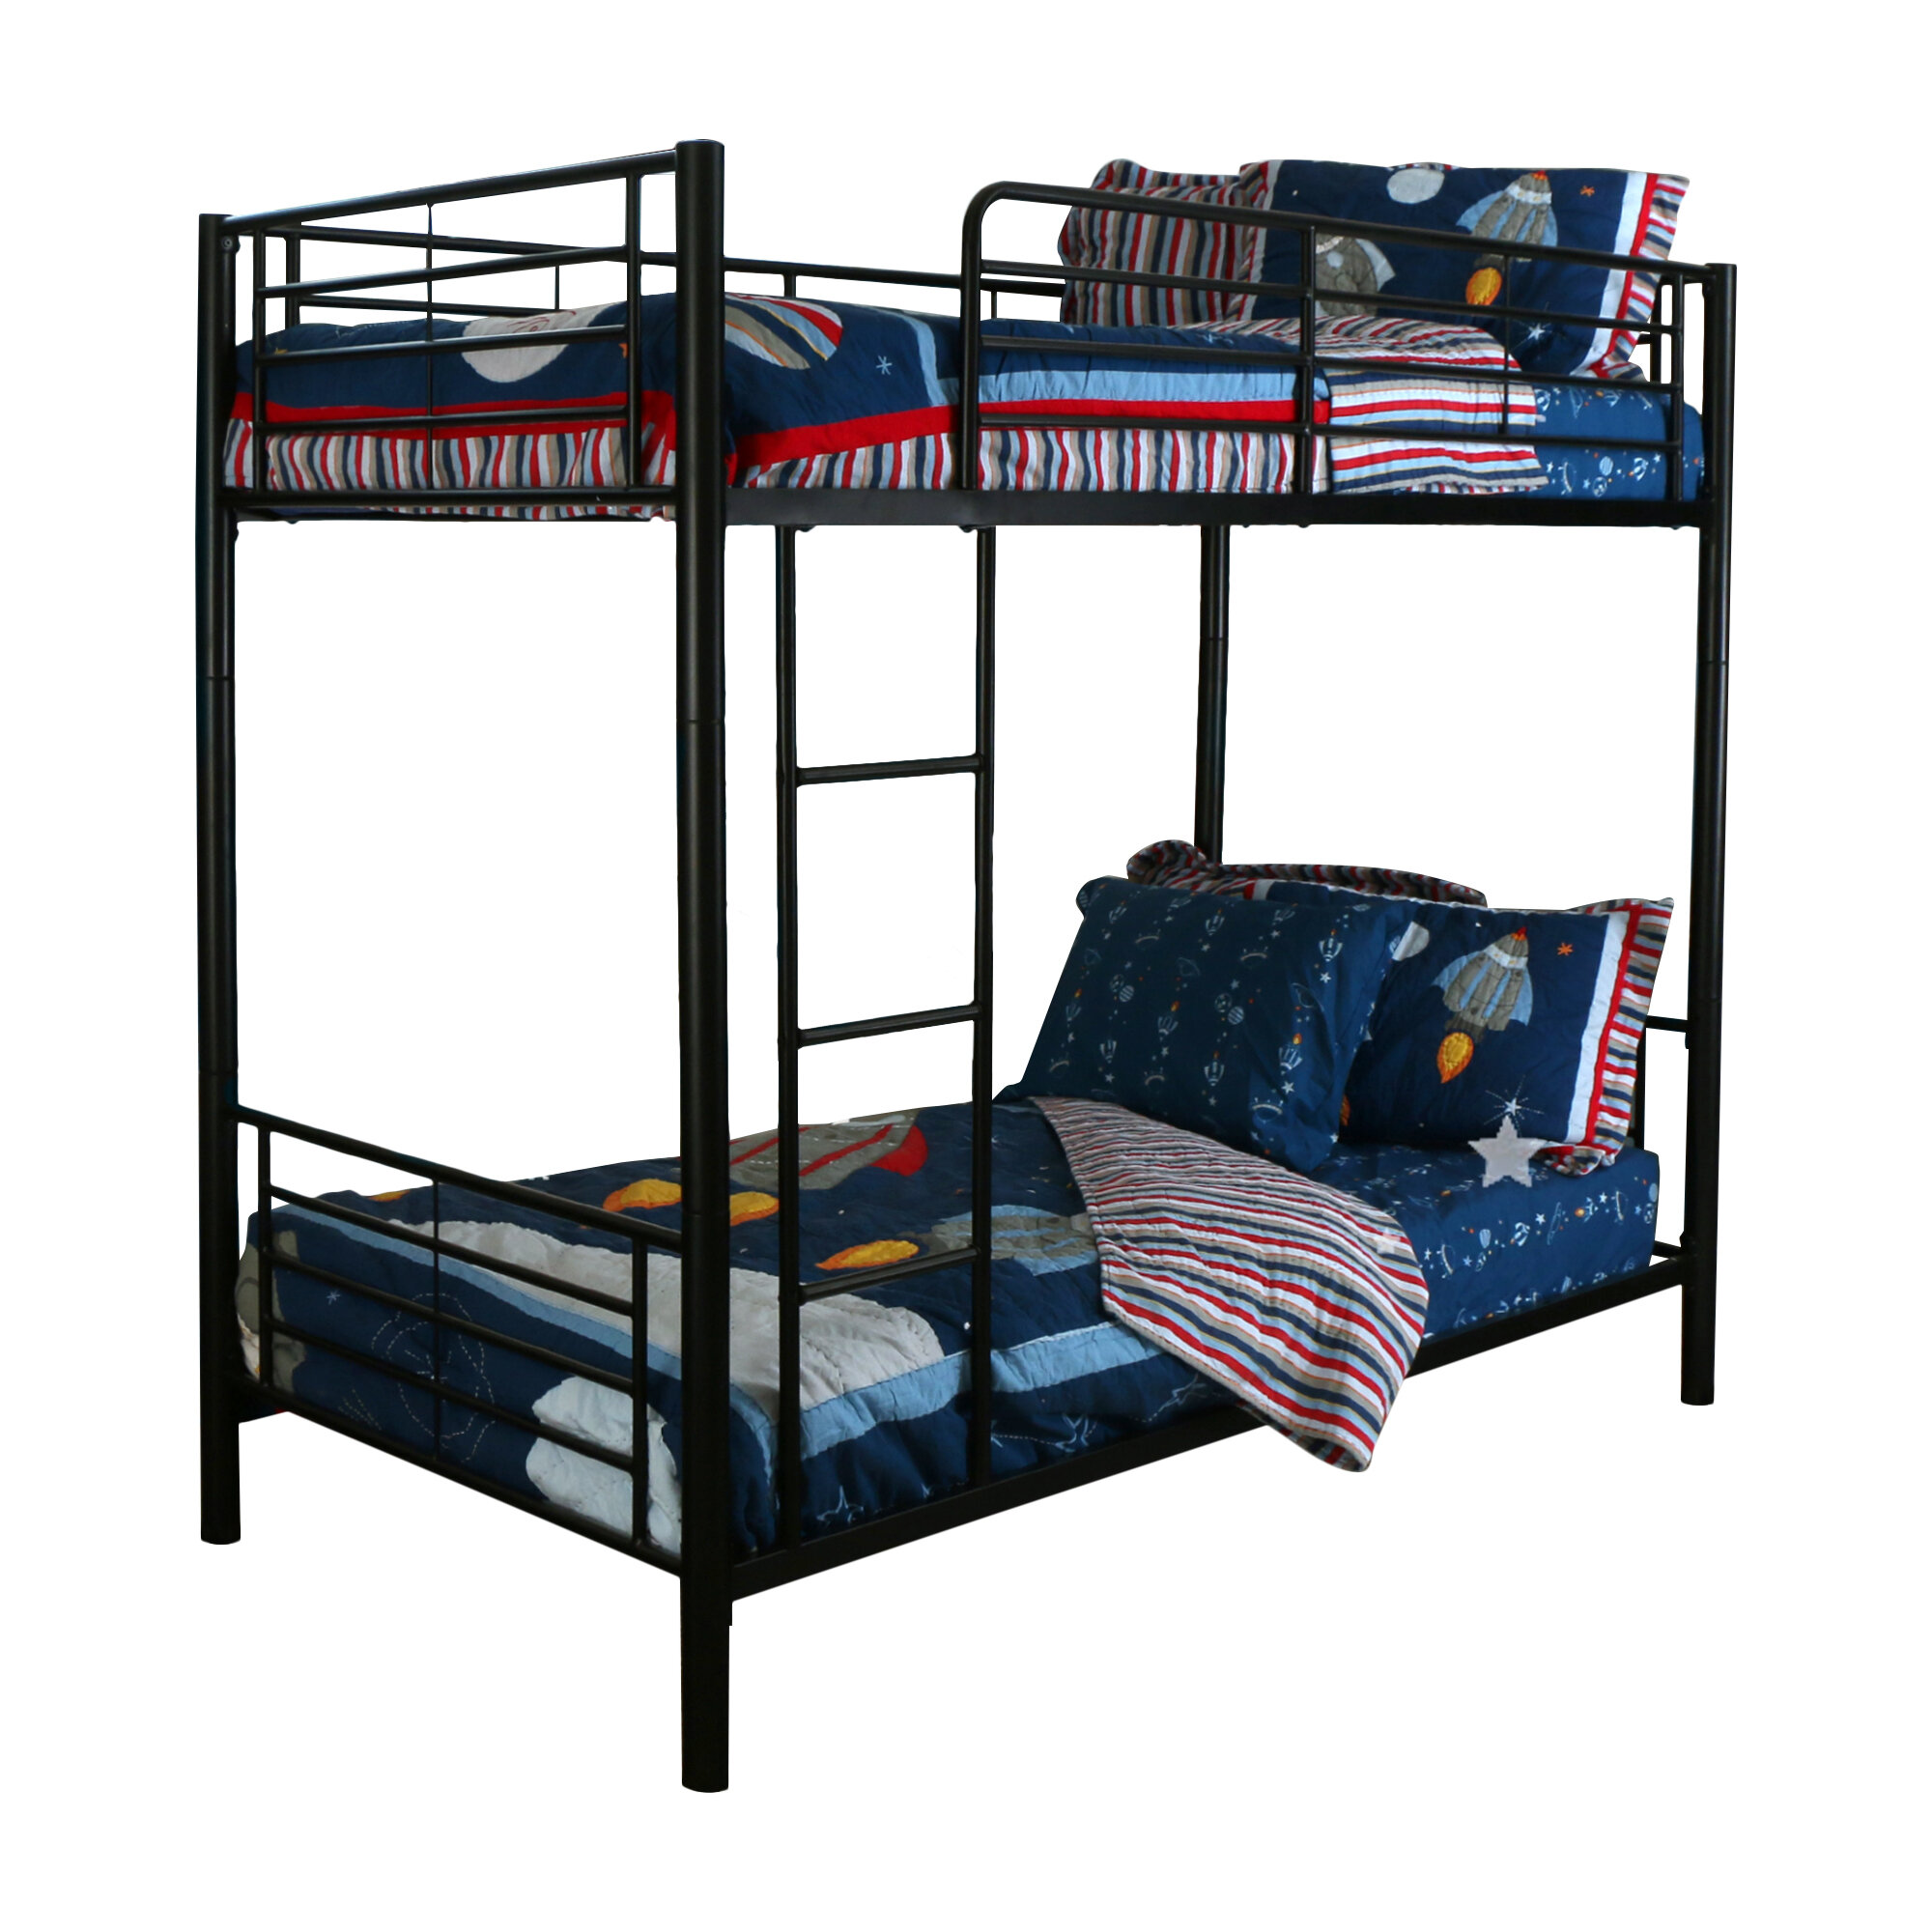 wayfair toddler bed malia bunk bed amp reviews wayfair 13802